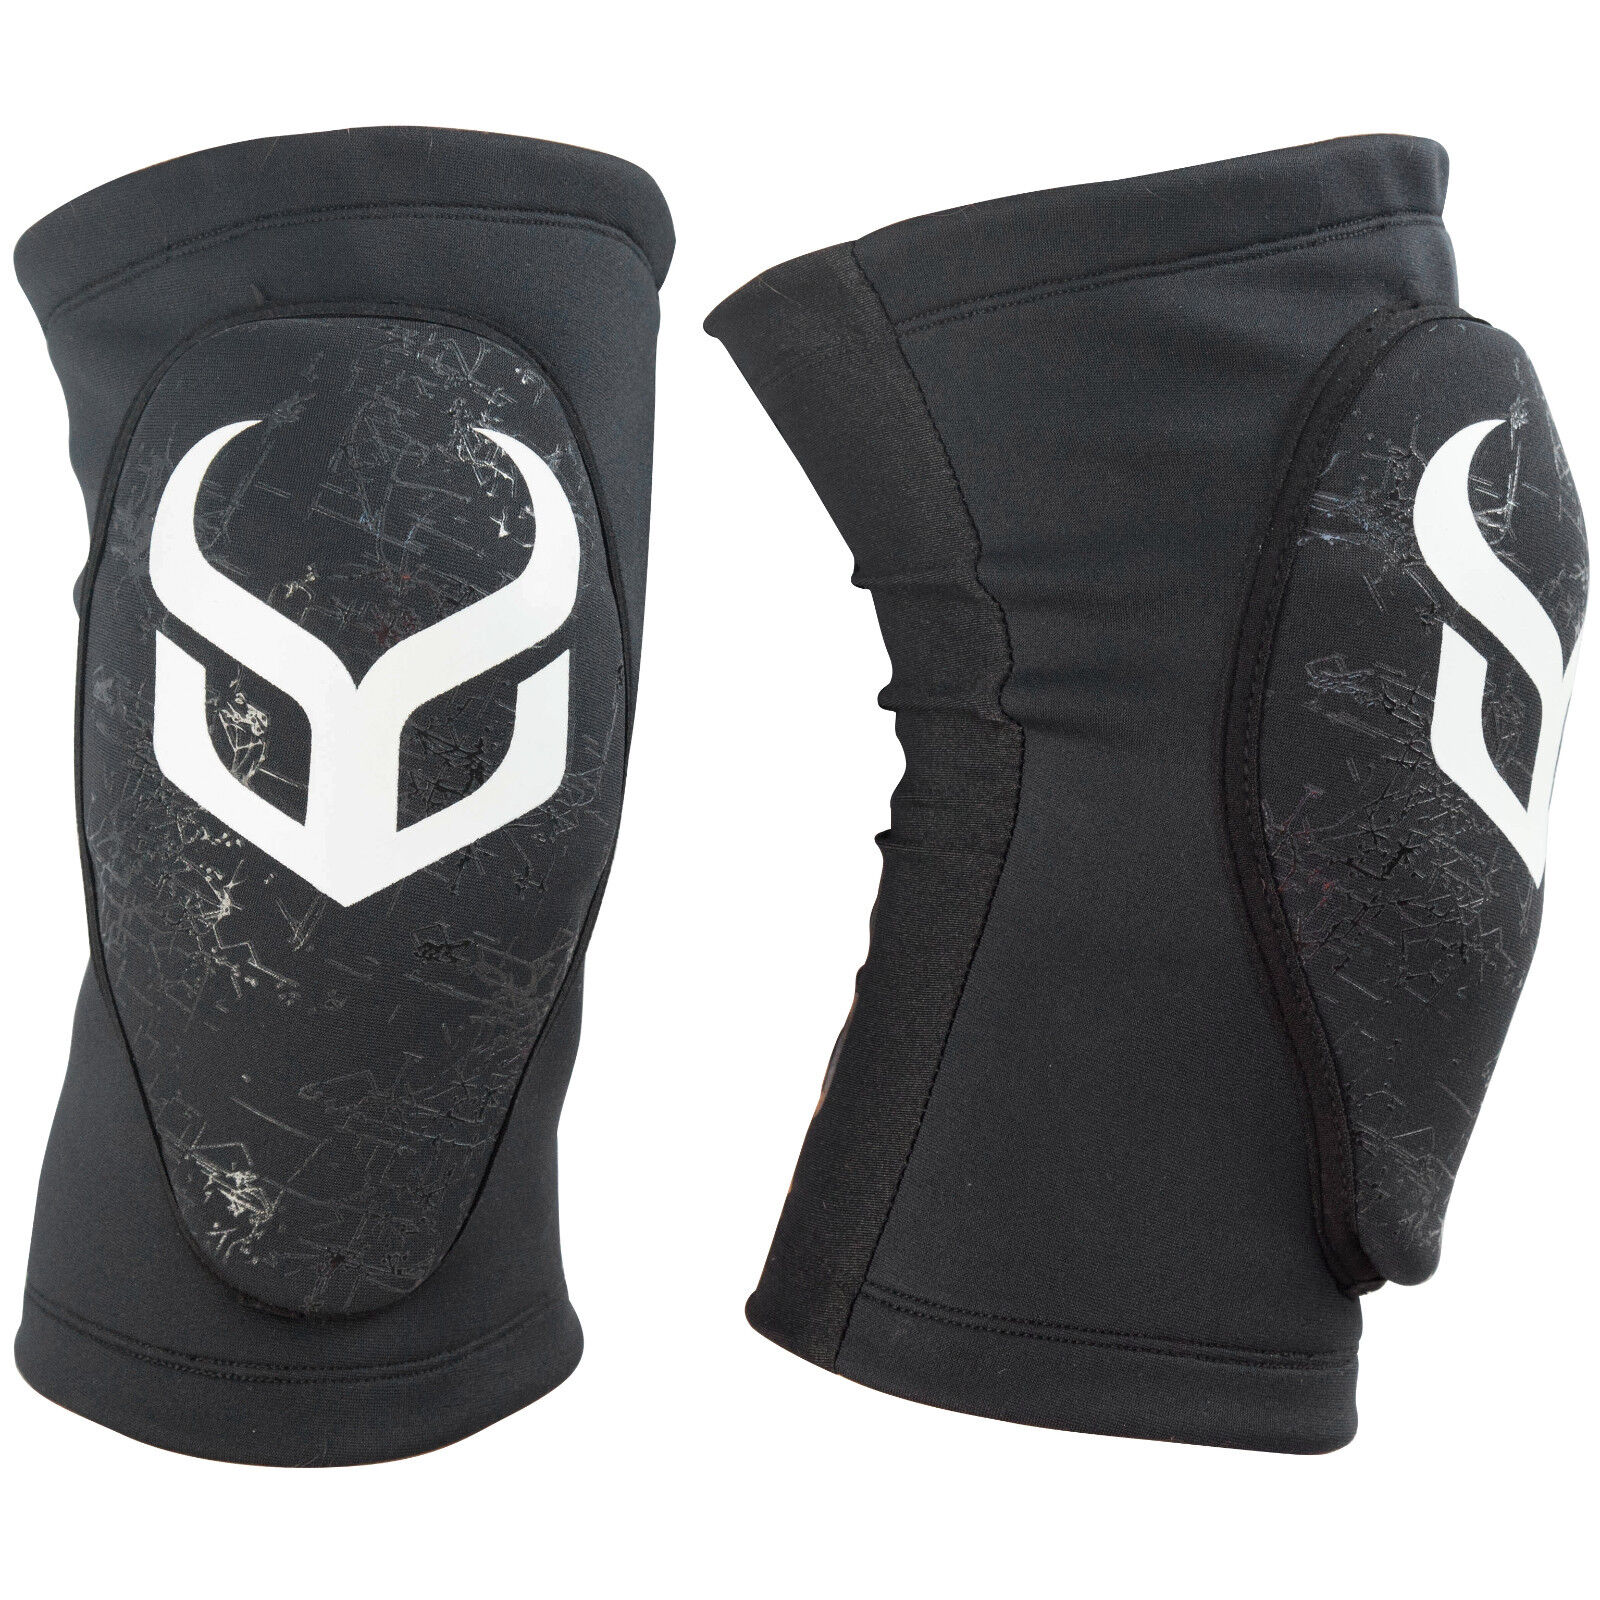 Demon Soft Cap Knee Pads Pro DS5110 NEW for Skiing and Snowboarding Mens Womens